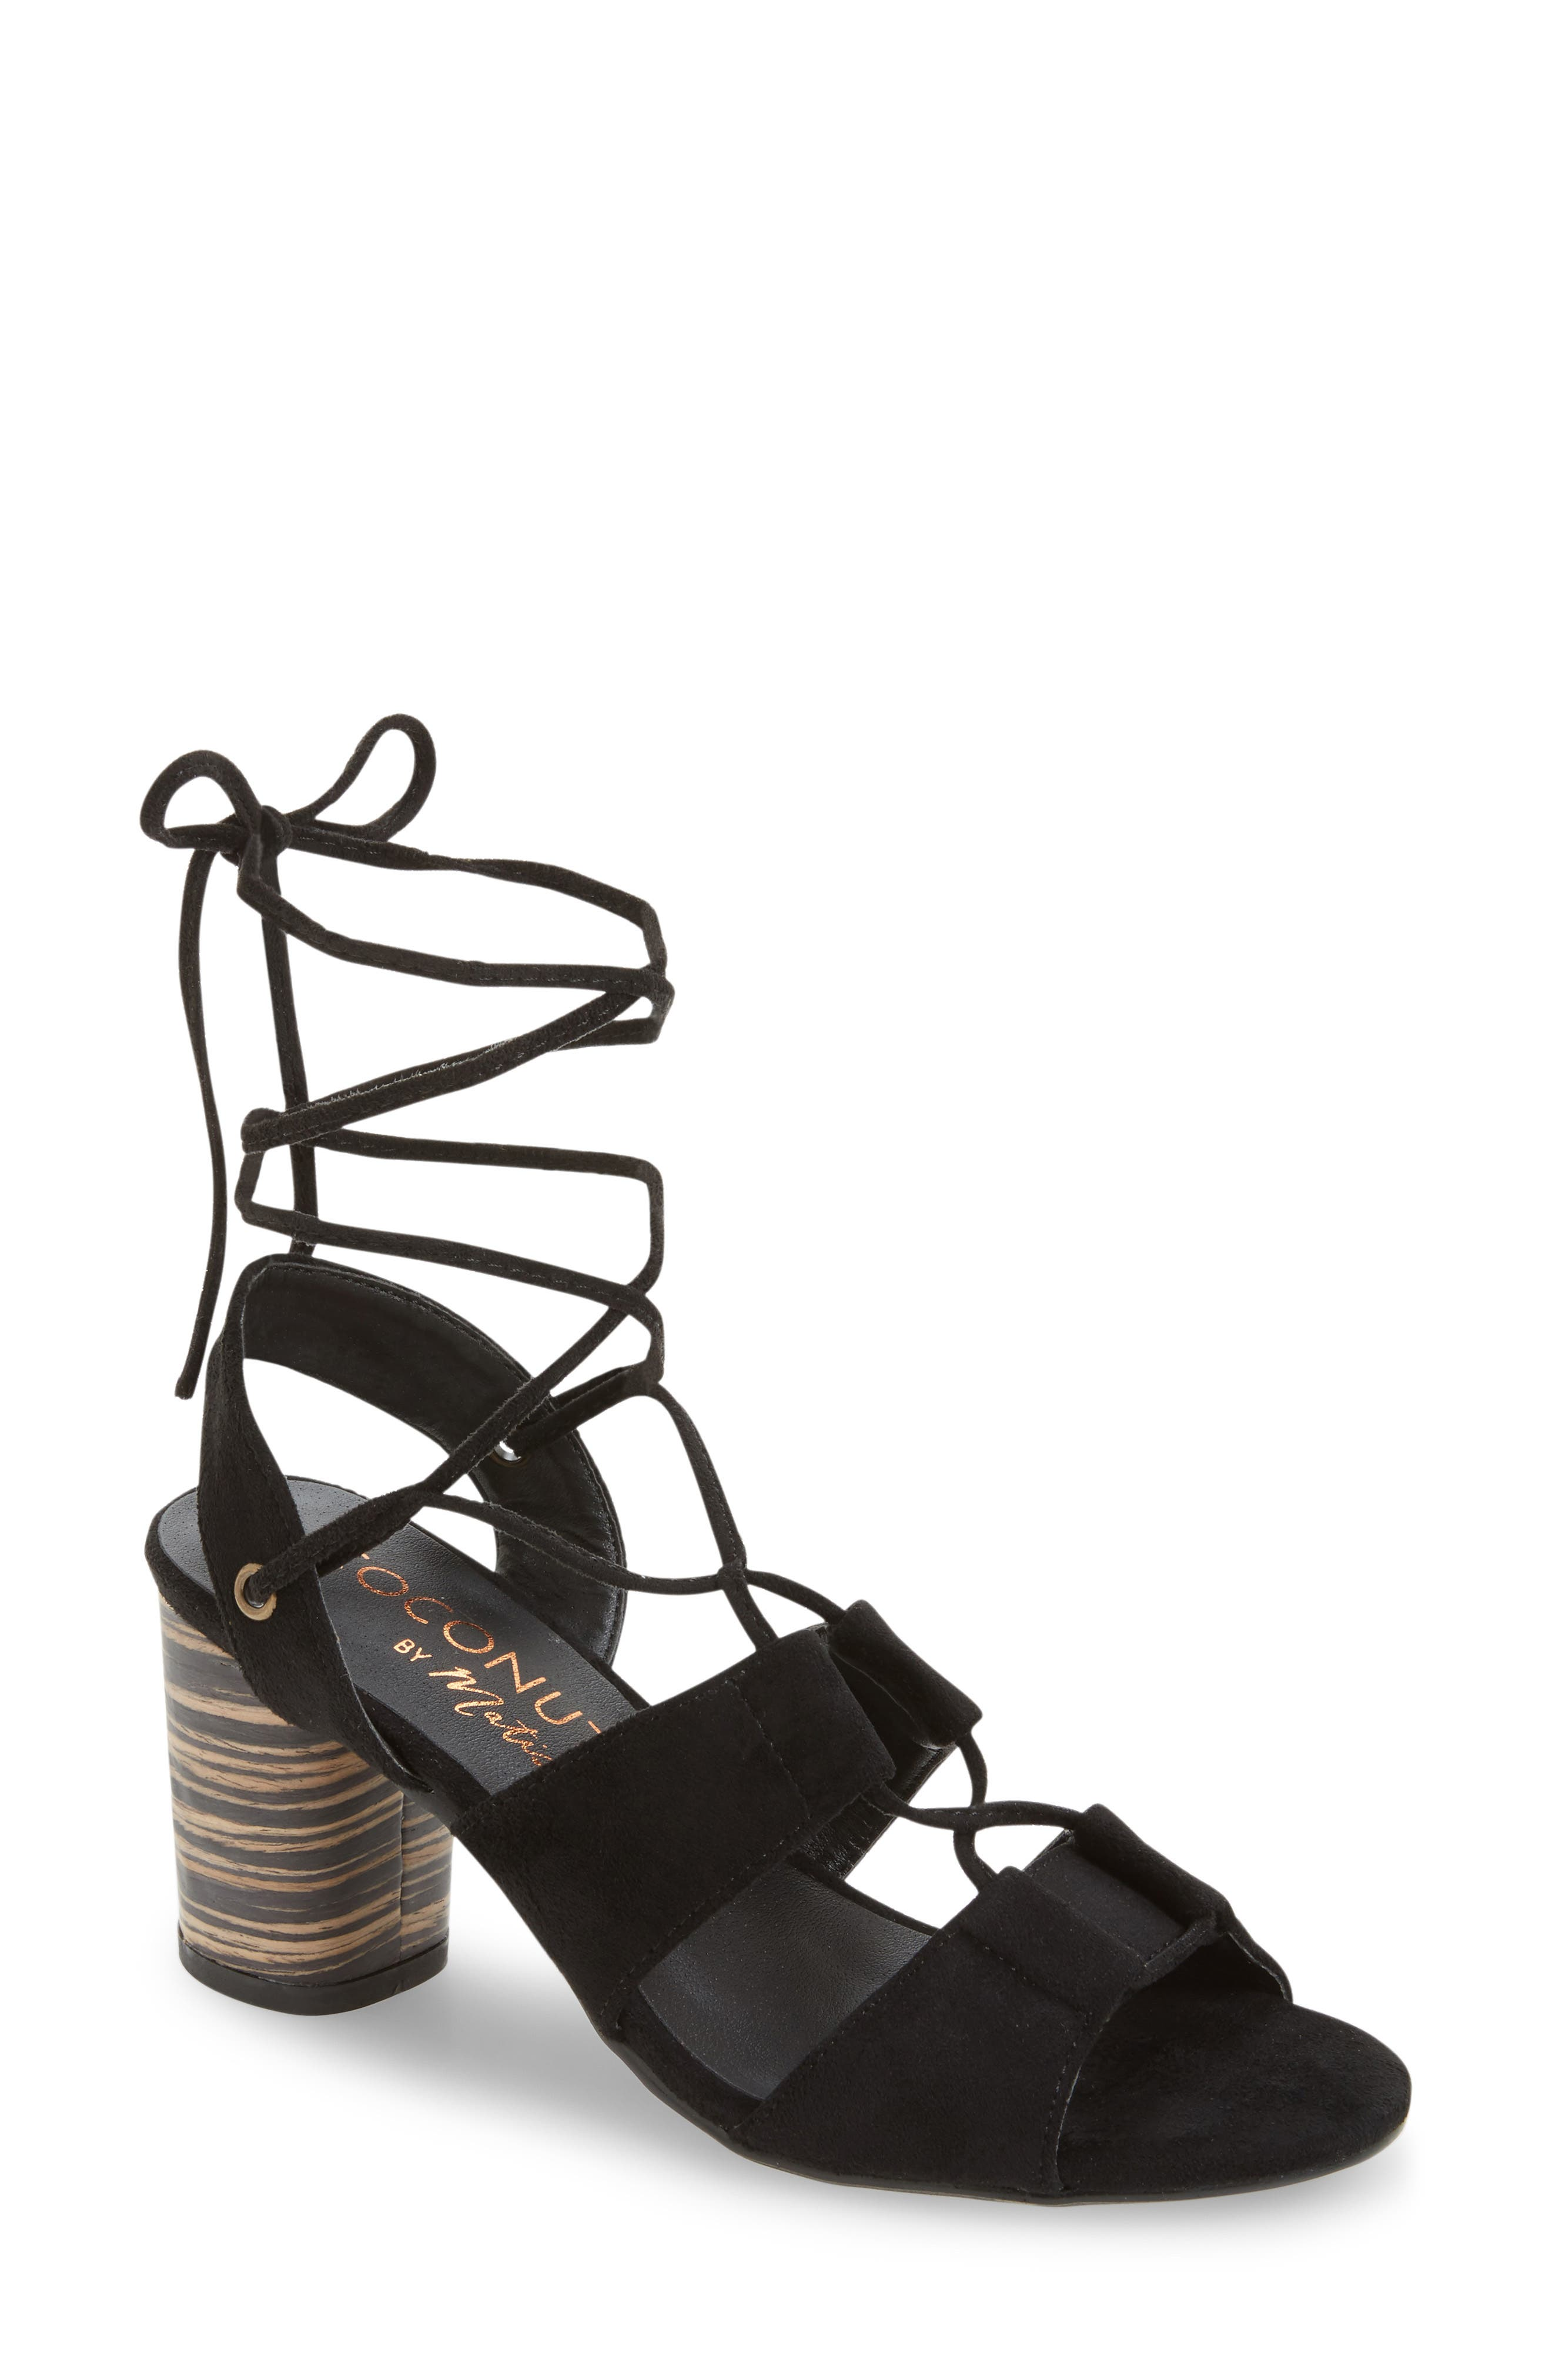 Coconuts by Matisse City Sandal,                         Main,                         color,